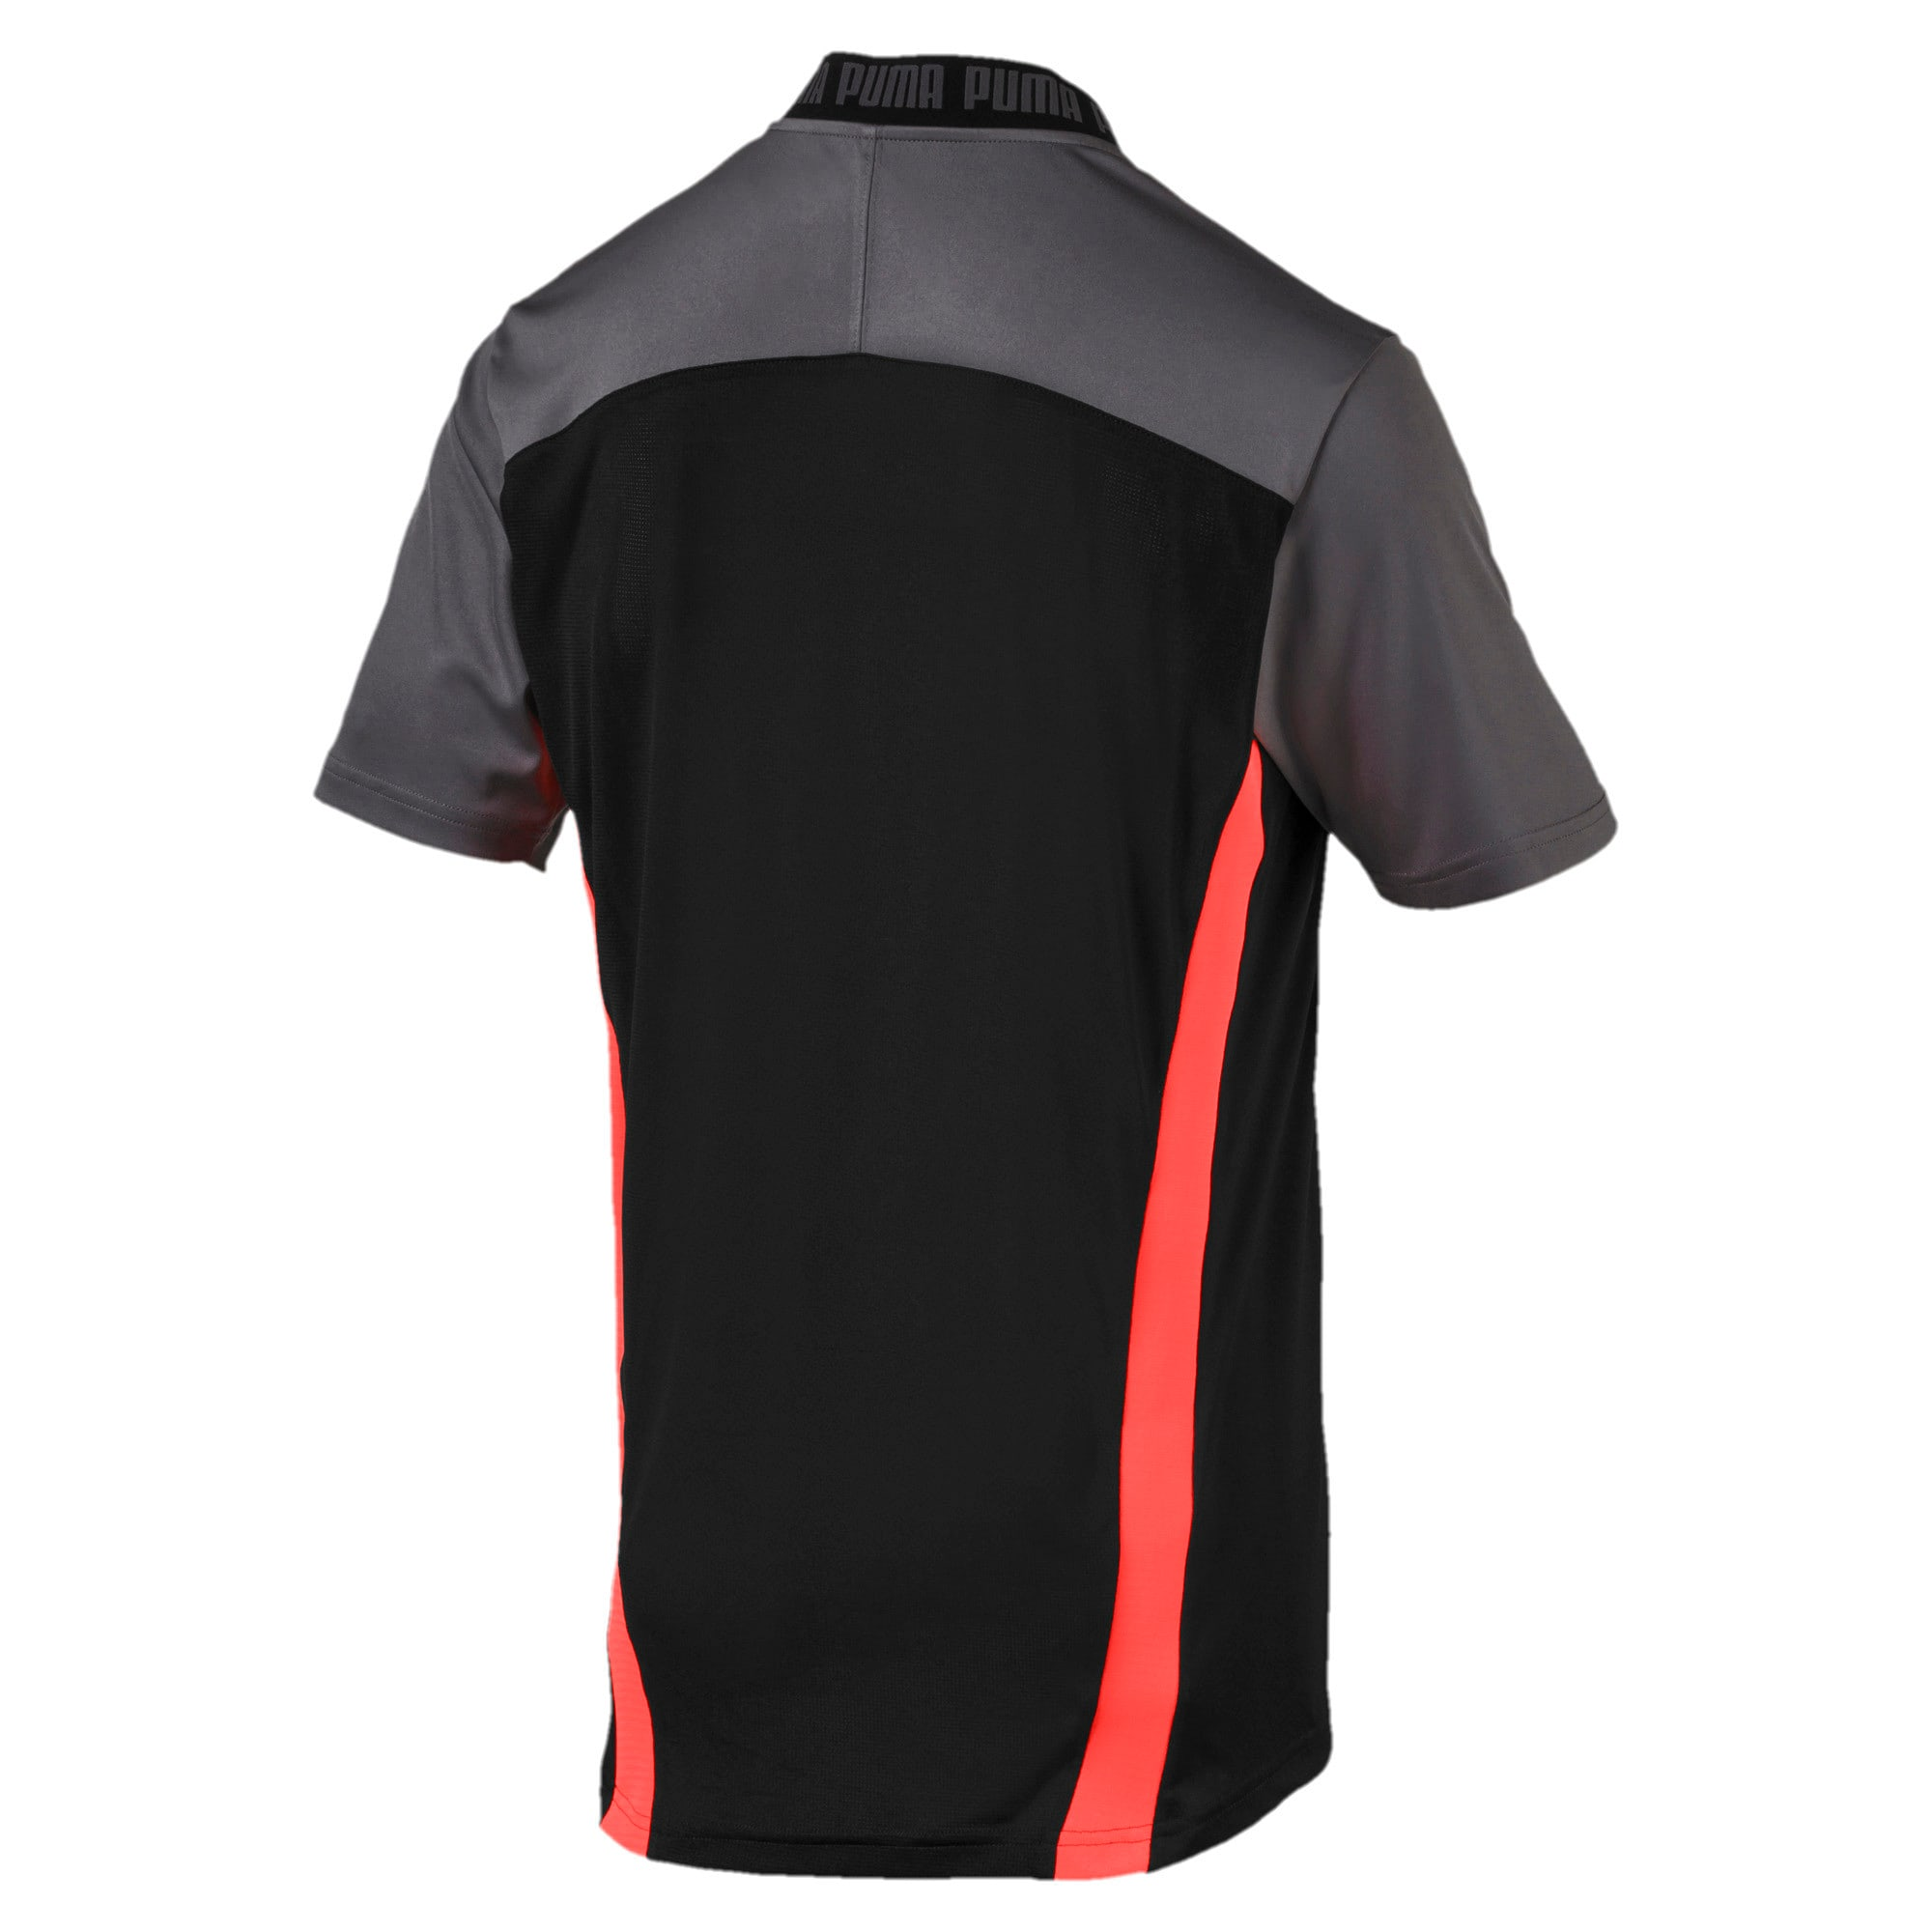 Thumbnail 5 of Pro T-shirt voor heren, Puma Black-Nrgy Red, medium